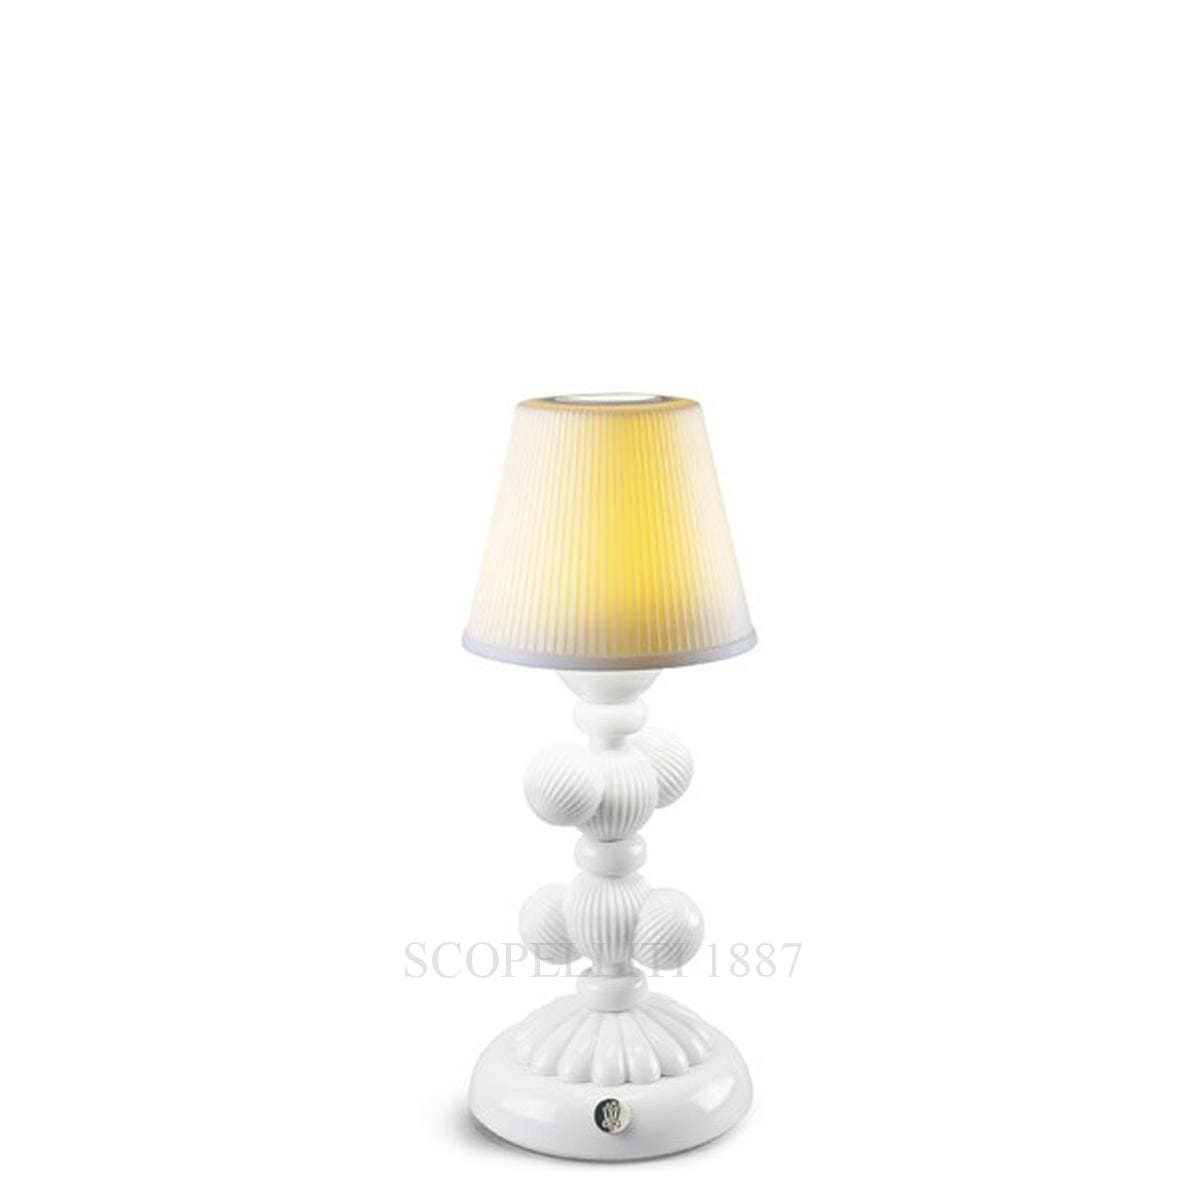 Lladró Cactus Firefly Table Lamp White